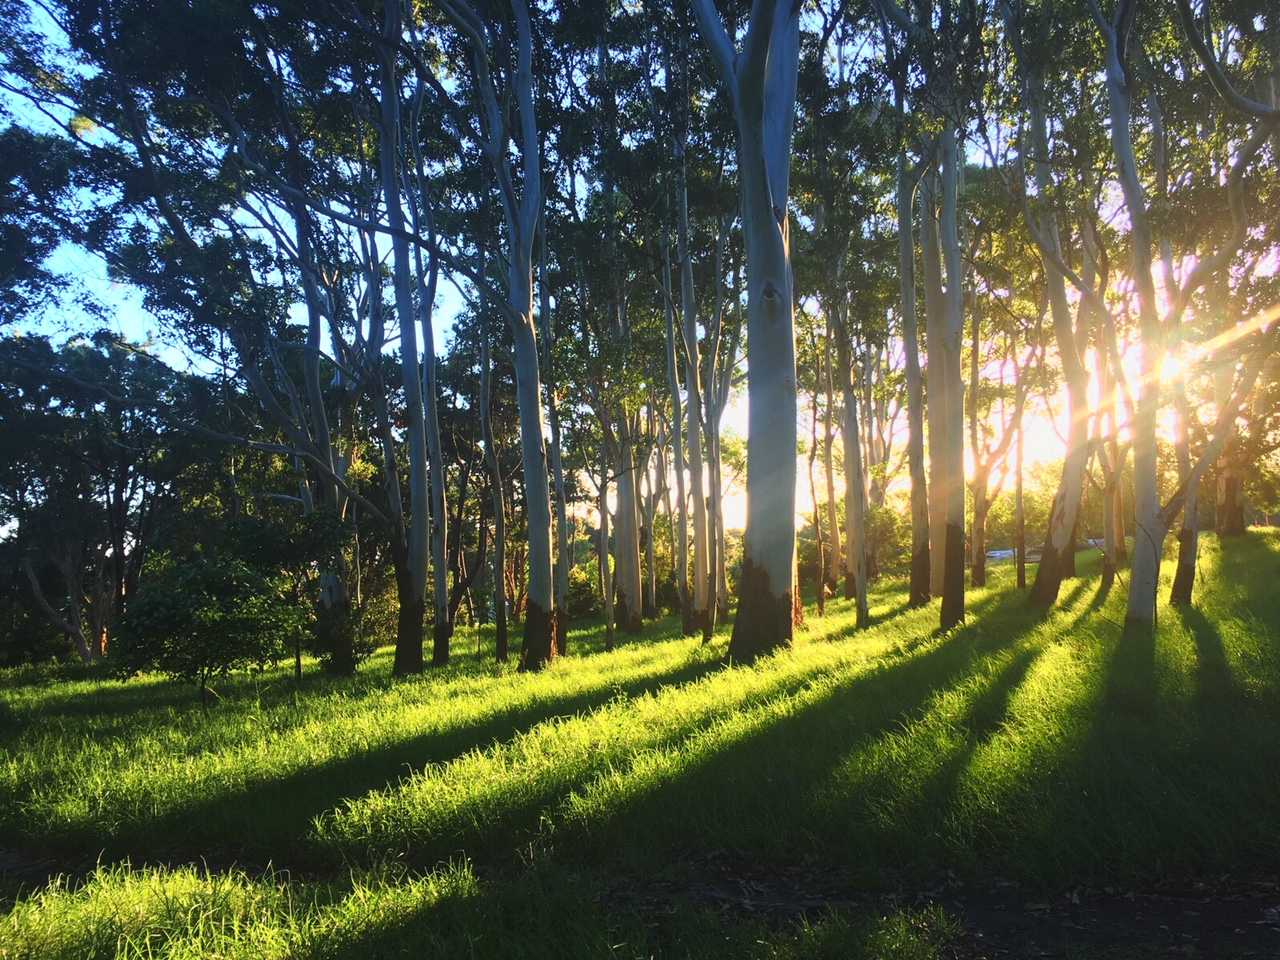 Sun shining through the gumtrees, in Centennial Park, Sydney Australia.